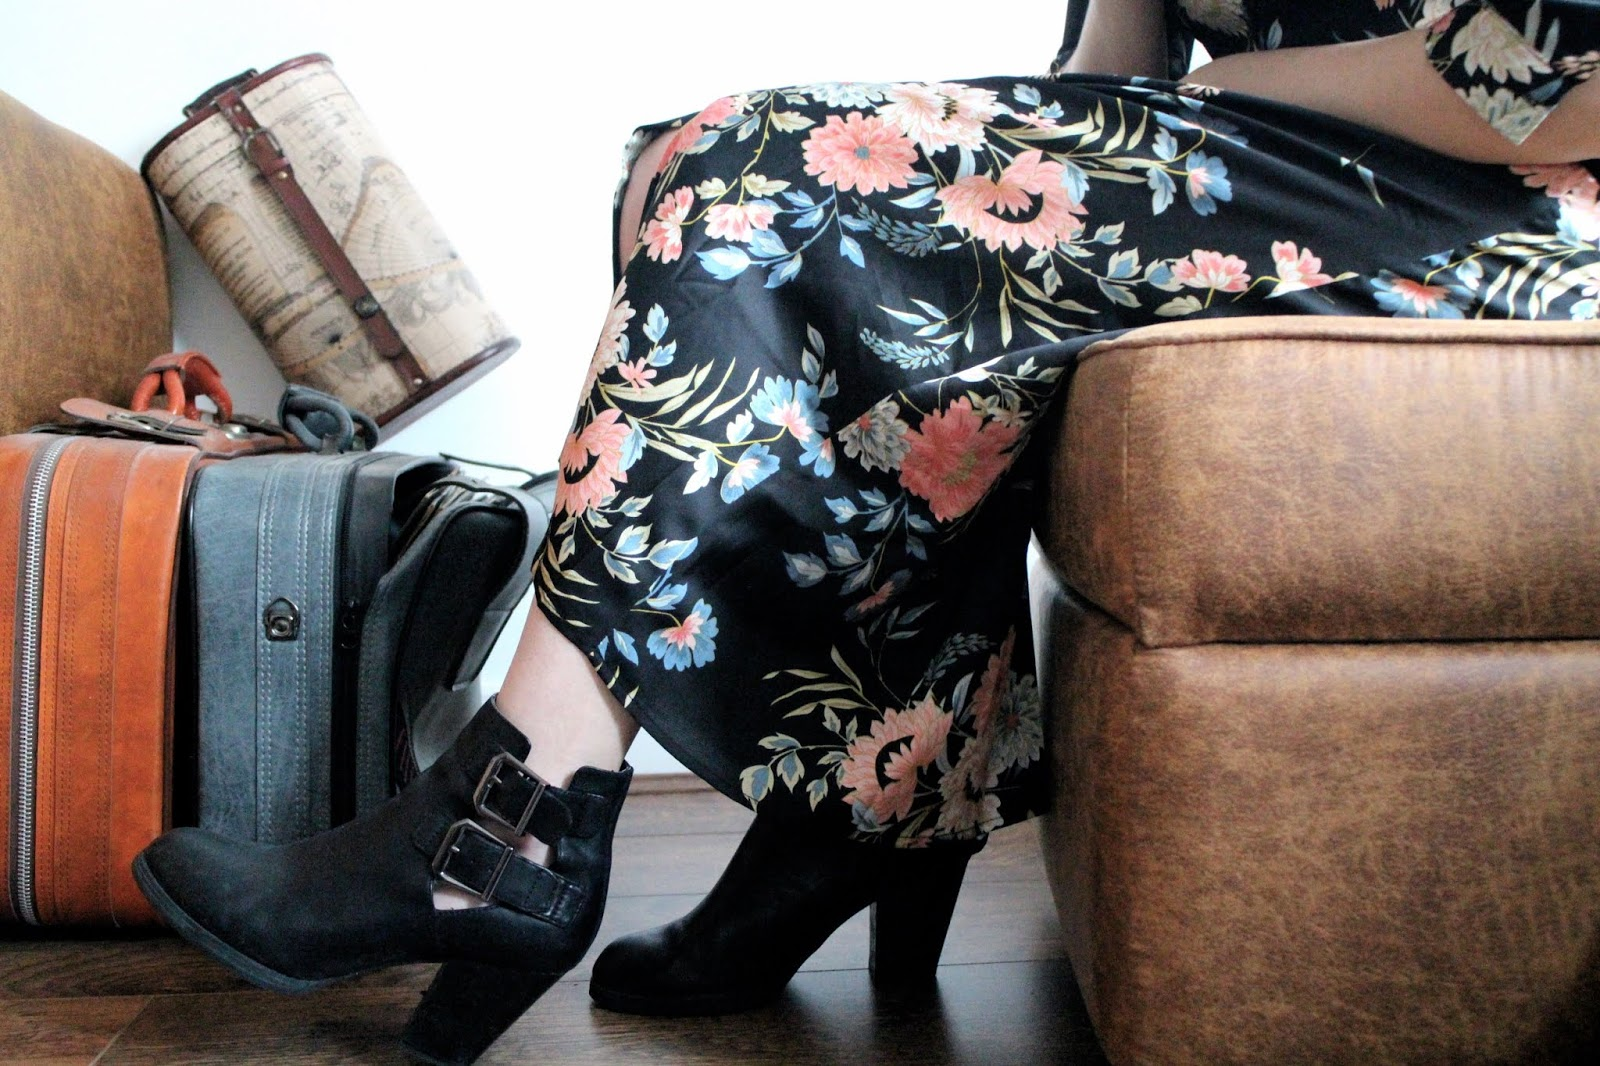 Crop of floral dress and close up of black boots with buckles